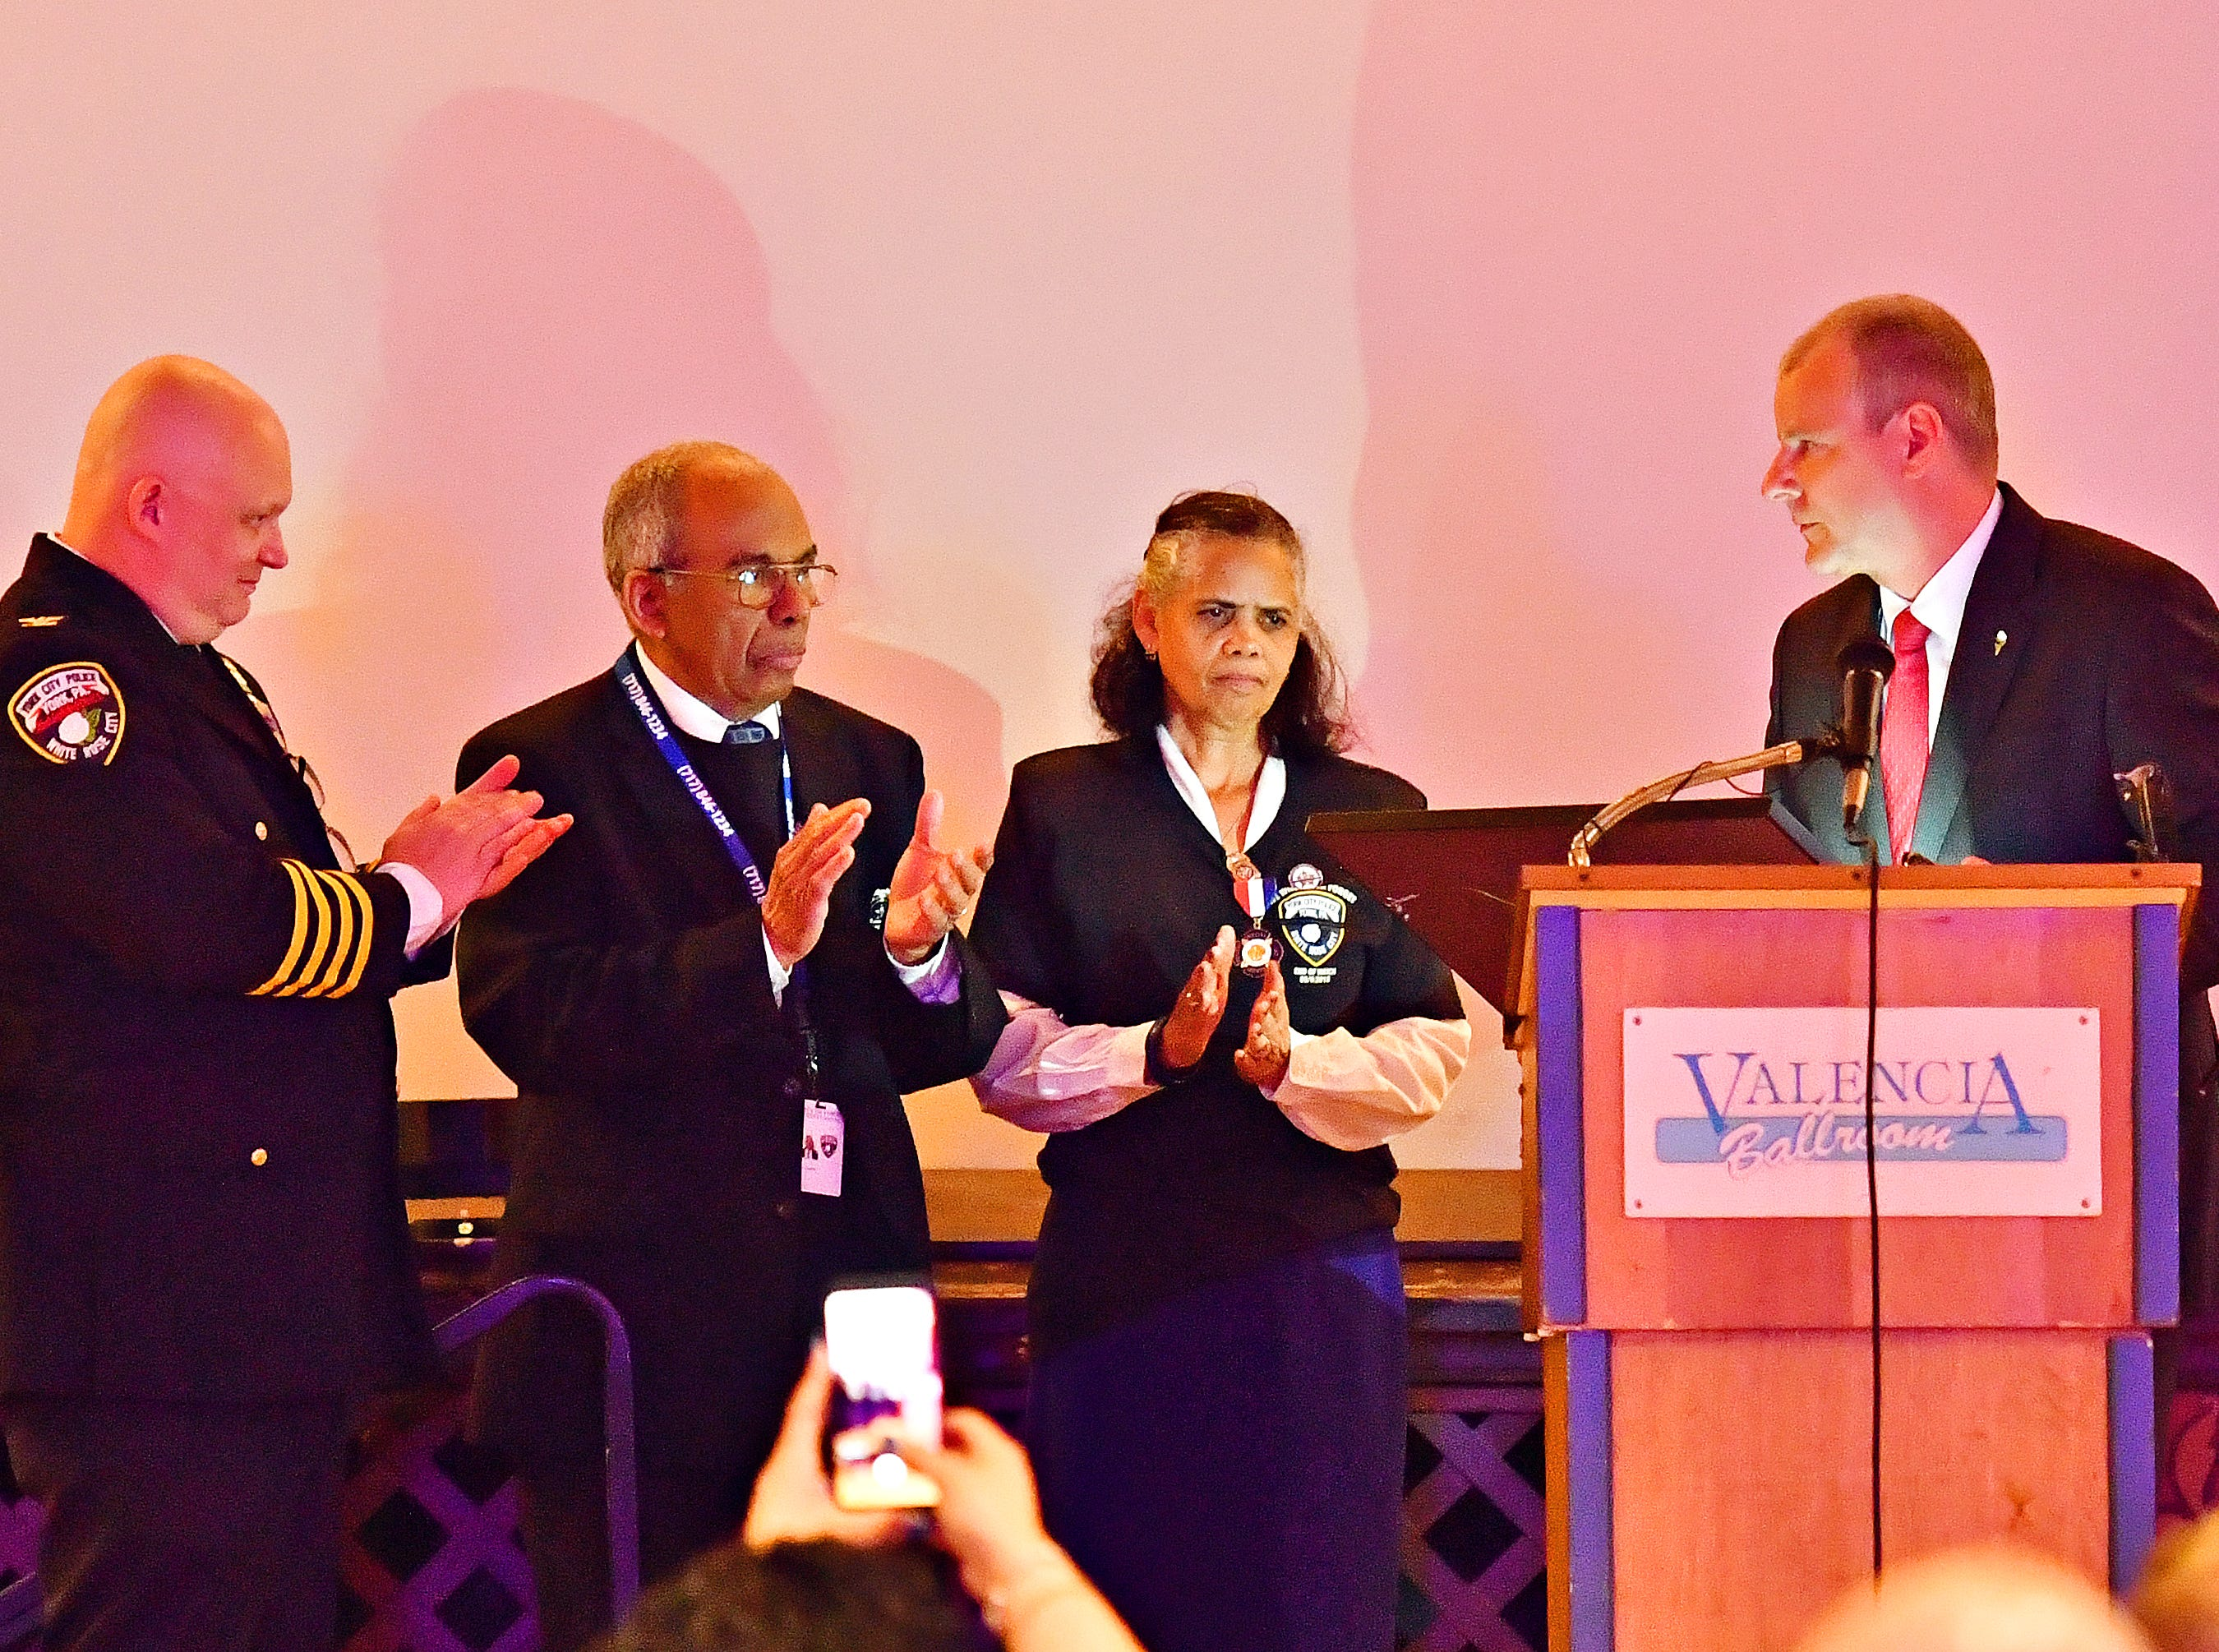 From left, York City Police Chief Troy Bankert, and Chaplains Alix and Arelis Sable look on as York City Mayor Michael Helfrich presents the official proclamation retiring badge number 187 during the York City Police Departmental Awards Ceremony at Valencia Ballroom in York City, Thursday, May 9, 2019. The badge number belonged to the Sables' son, Officer Alex Sable, 37, who died in the line of duty. Dawn J. Sagert photo